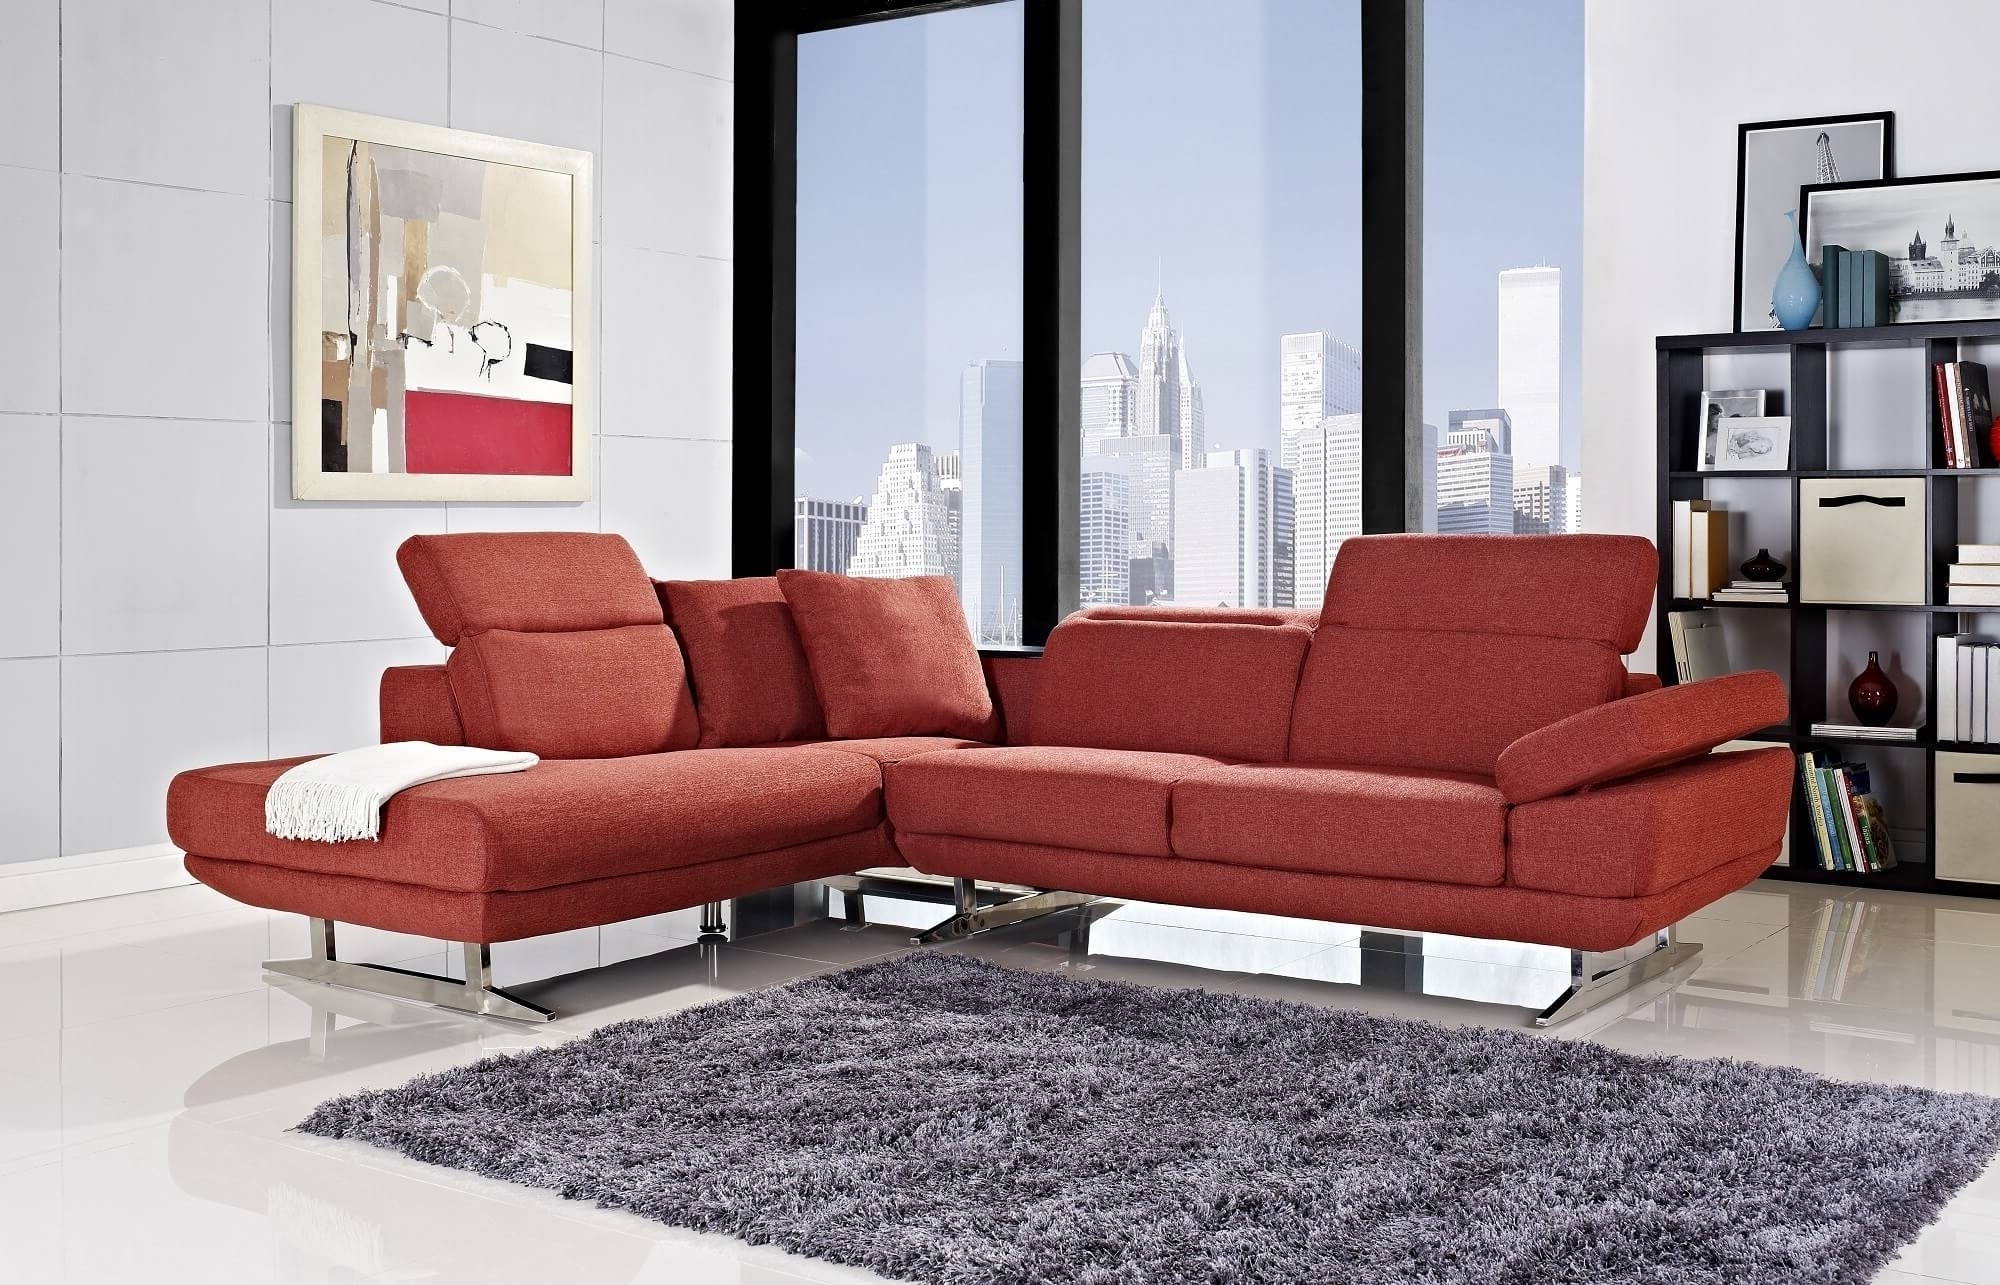 Well Known Red Faux Leather Sectionals Within Red Sectional Sofa. Red Faux Leather Sectional Sofa (View 18 of 20)